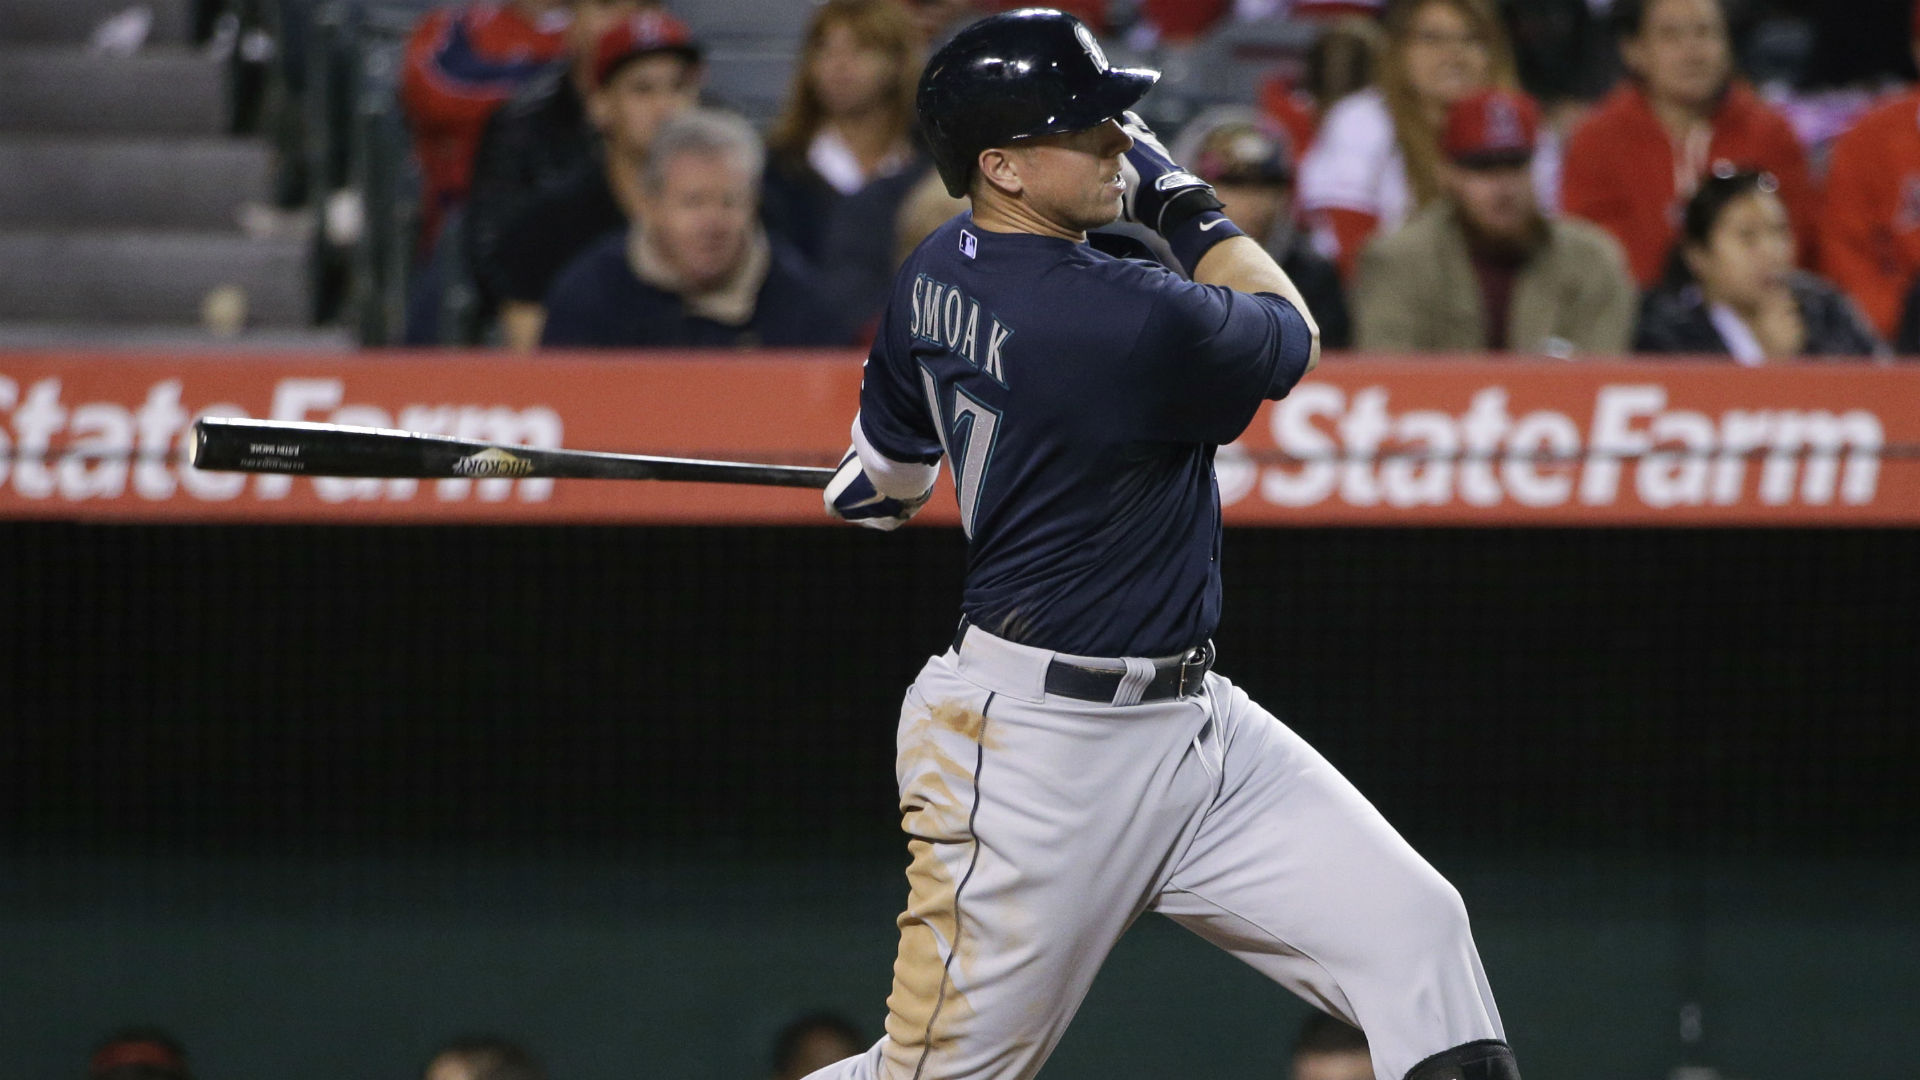 Waiver Report: Where there's Smoak...